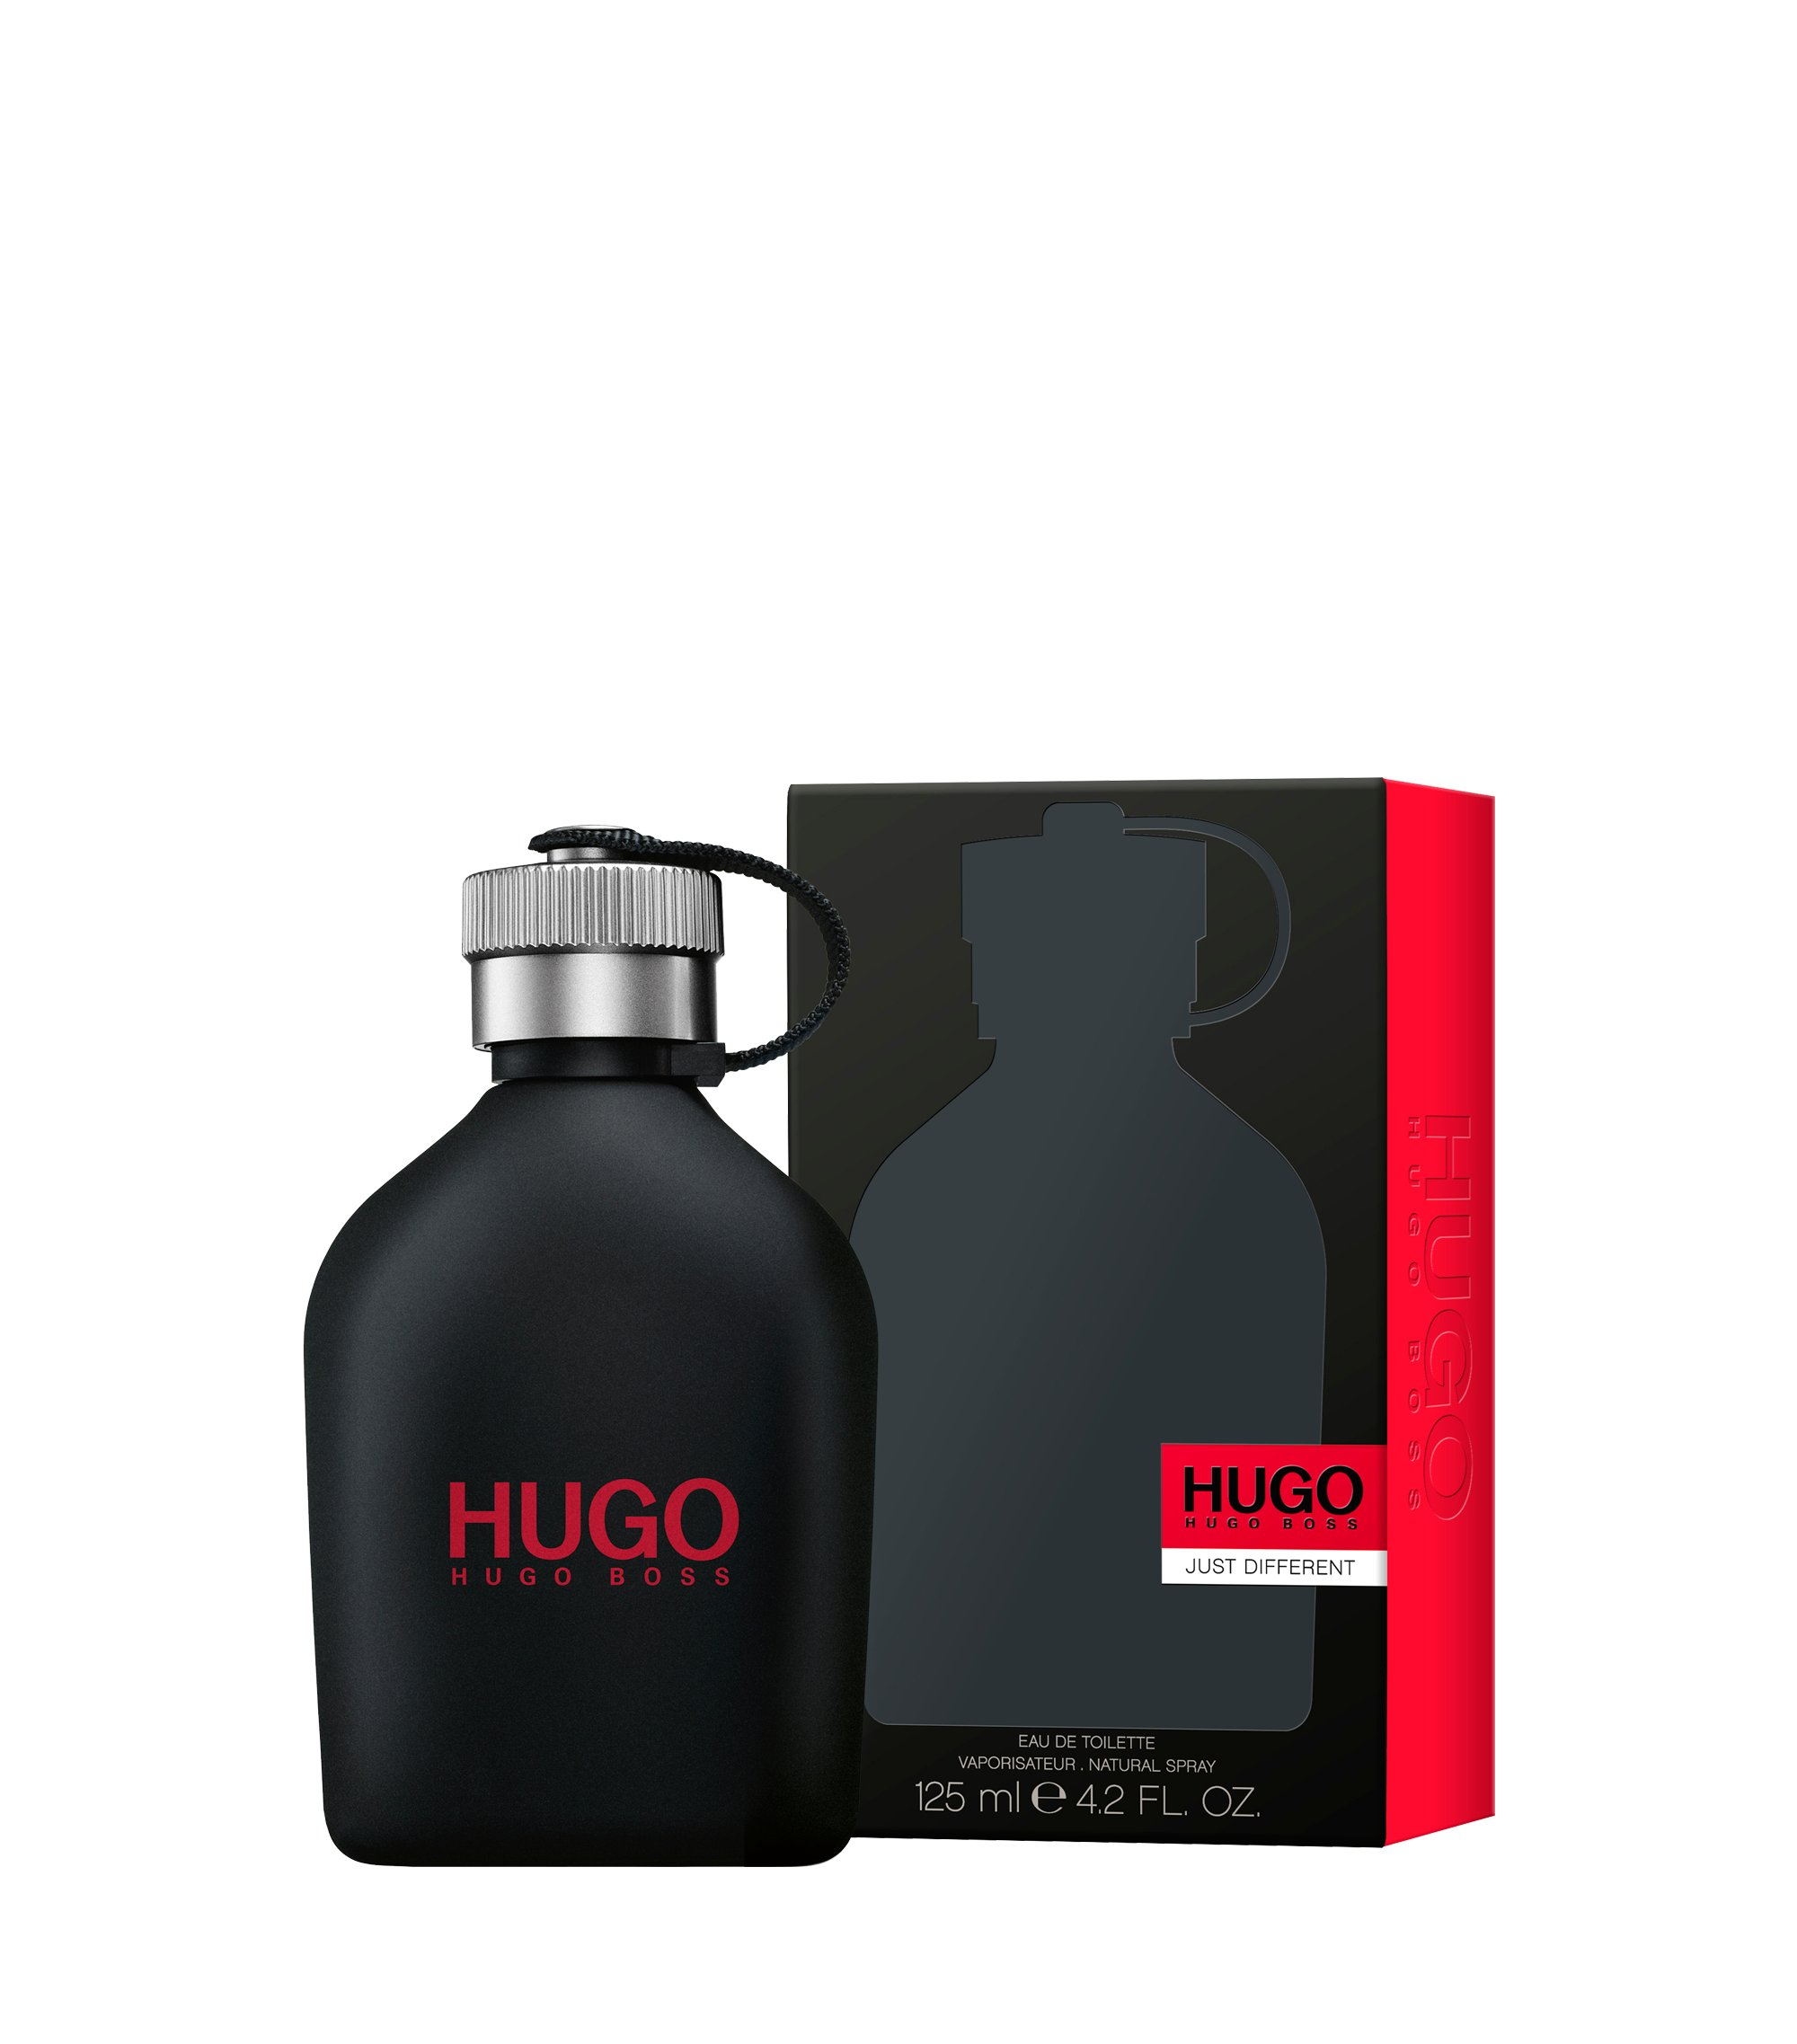 HUGO Just Different eau de toilette 125ml, Assorted-Pre-Pack